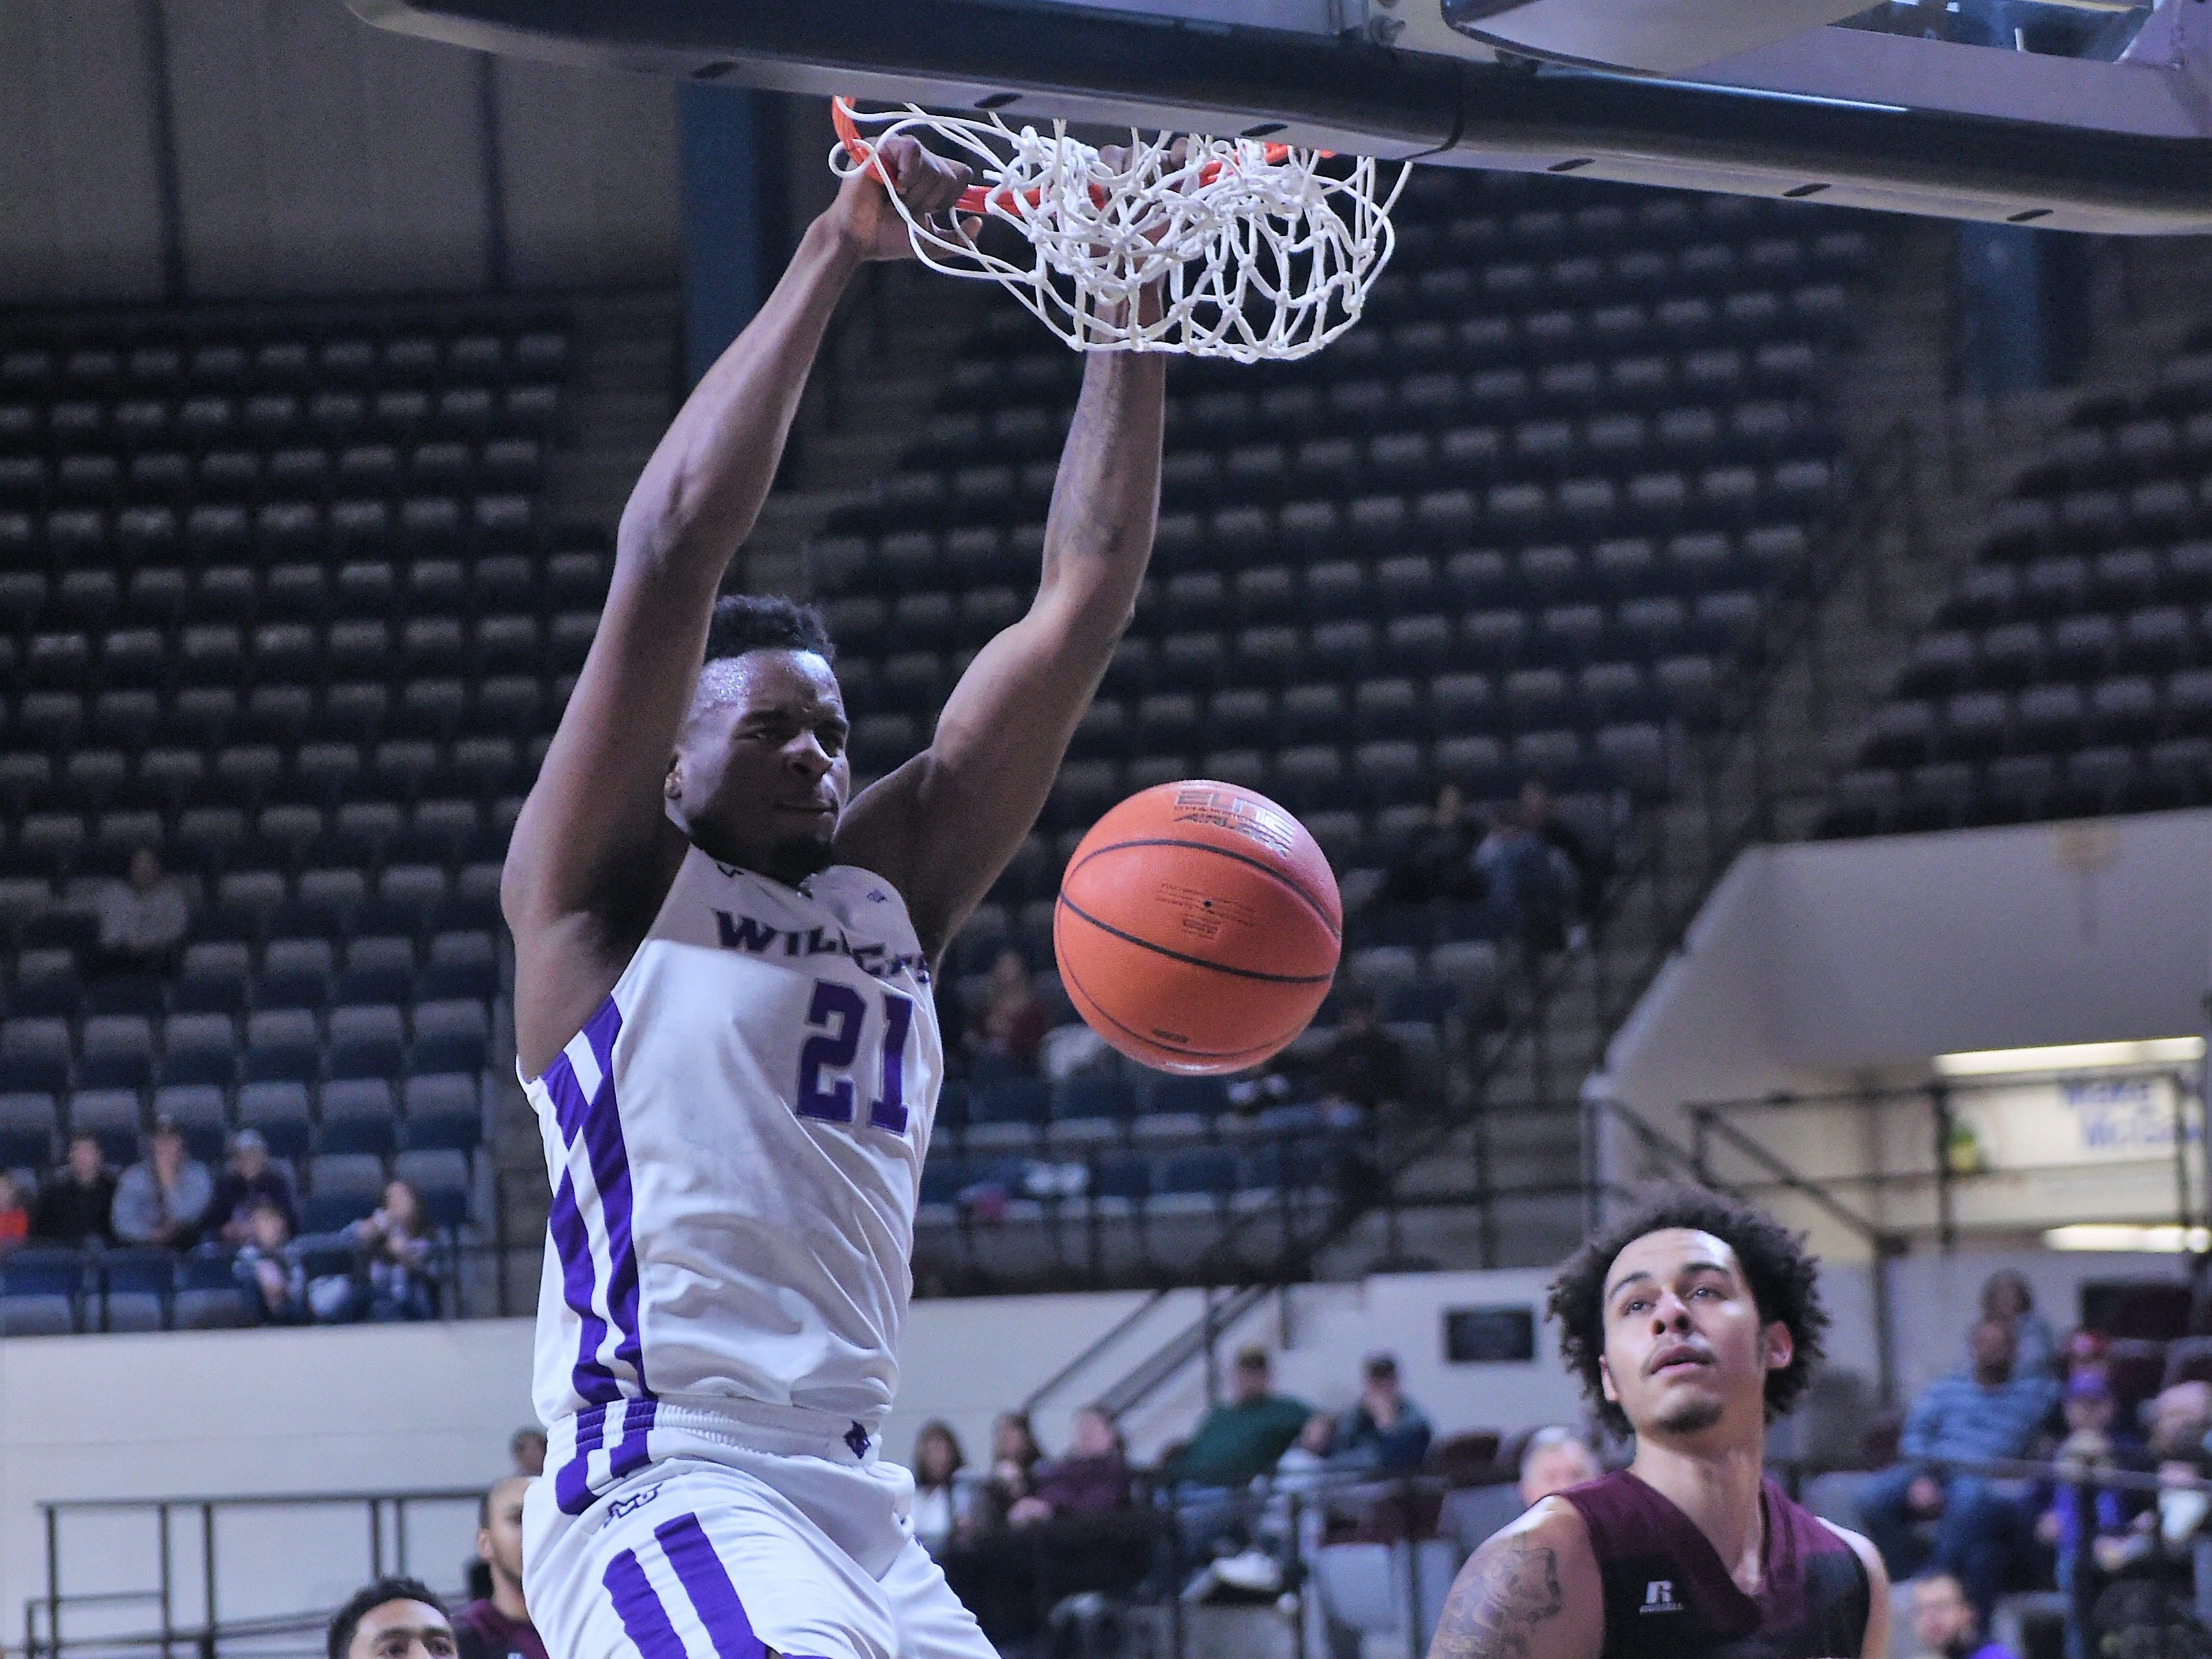 ACU's Jalone Friday (21) finishes off a dunk during Saturday's game against McMurry at Moody Coliseum.